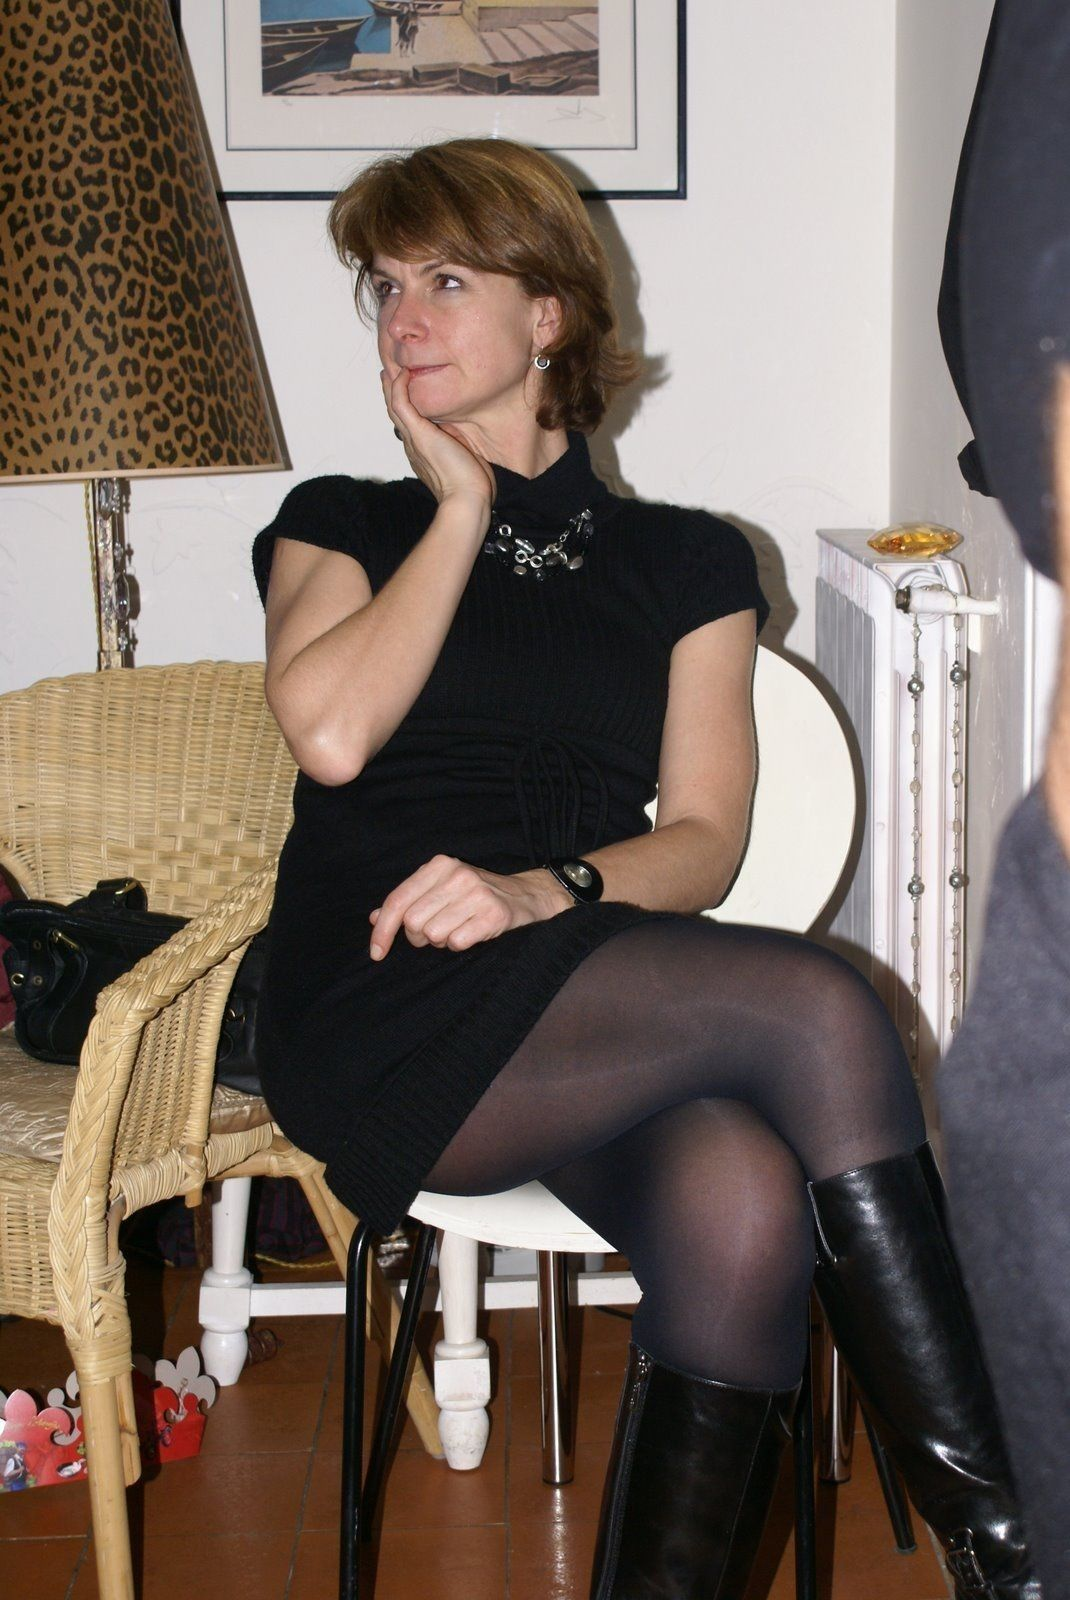 pantyhose in opaque Older women